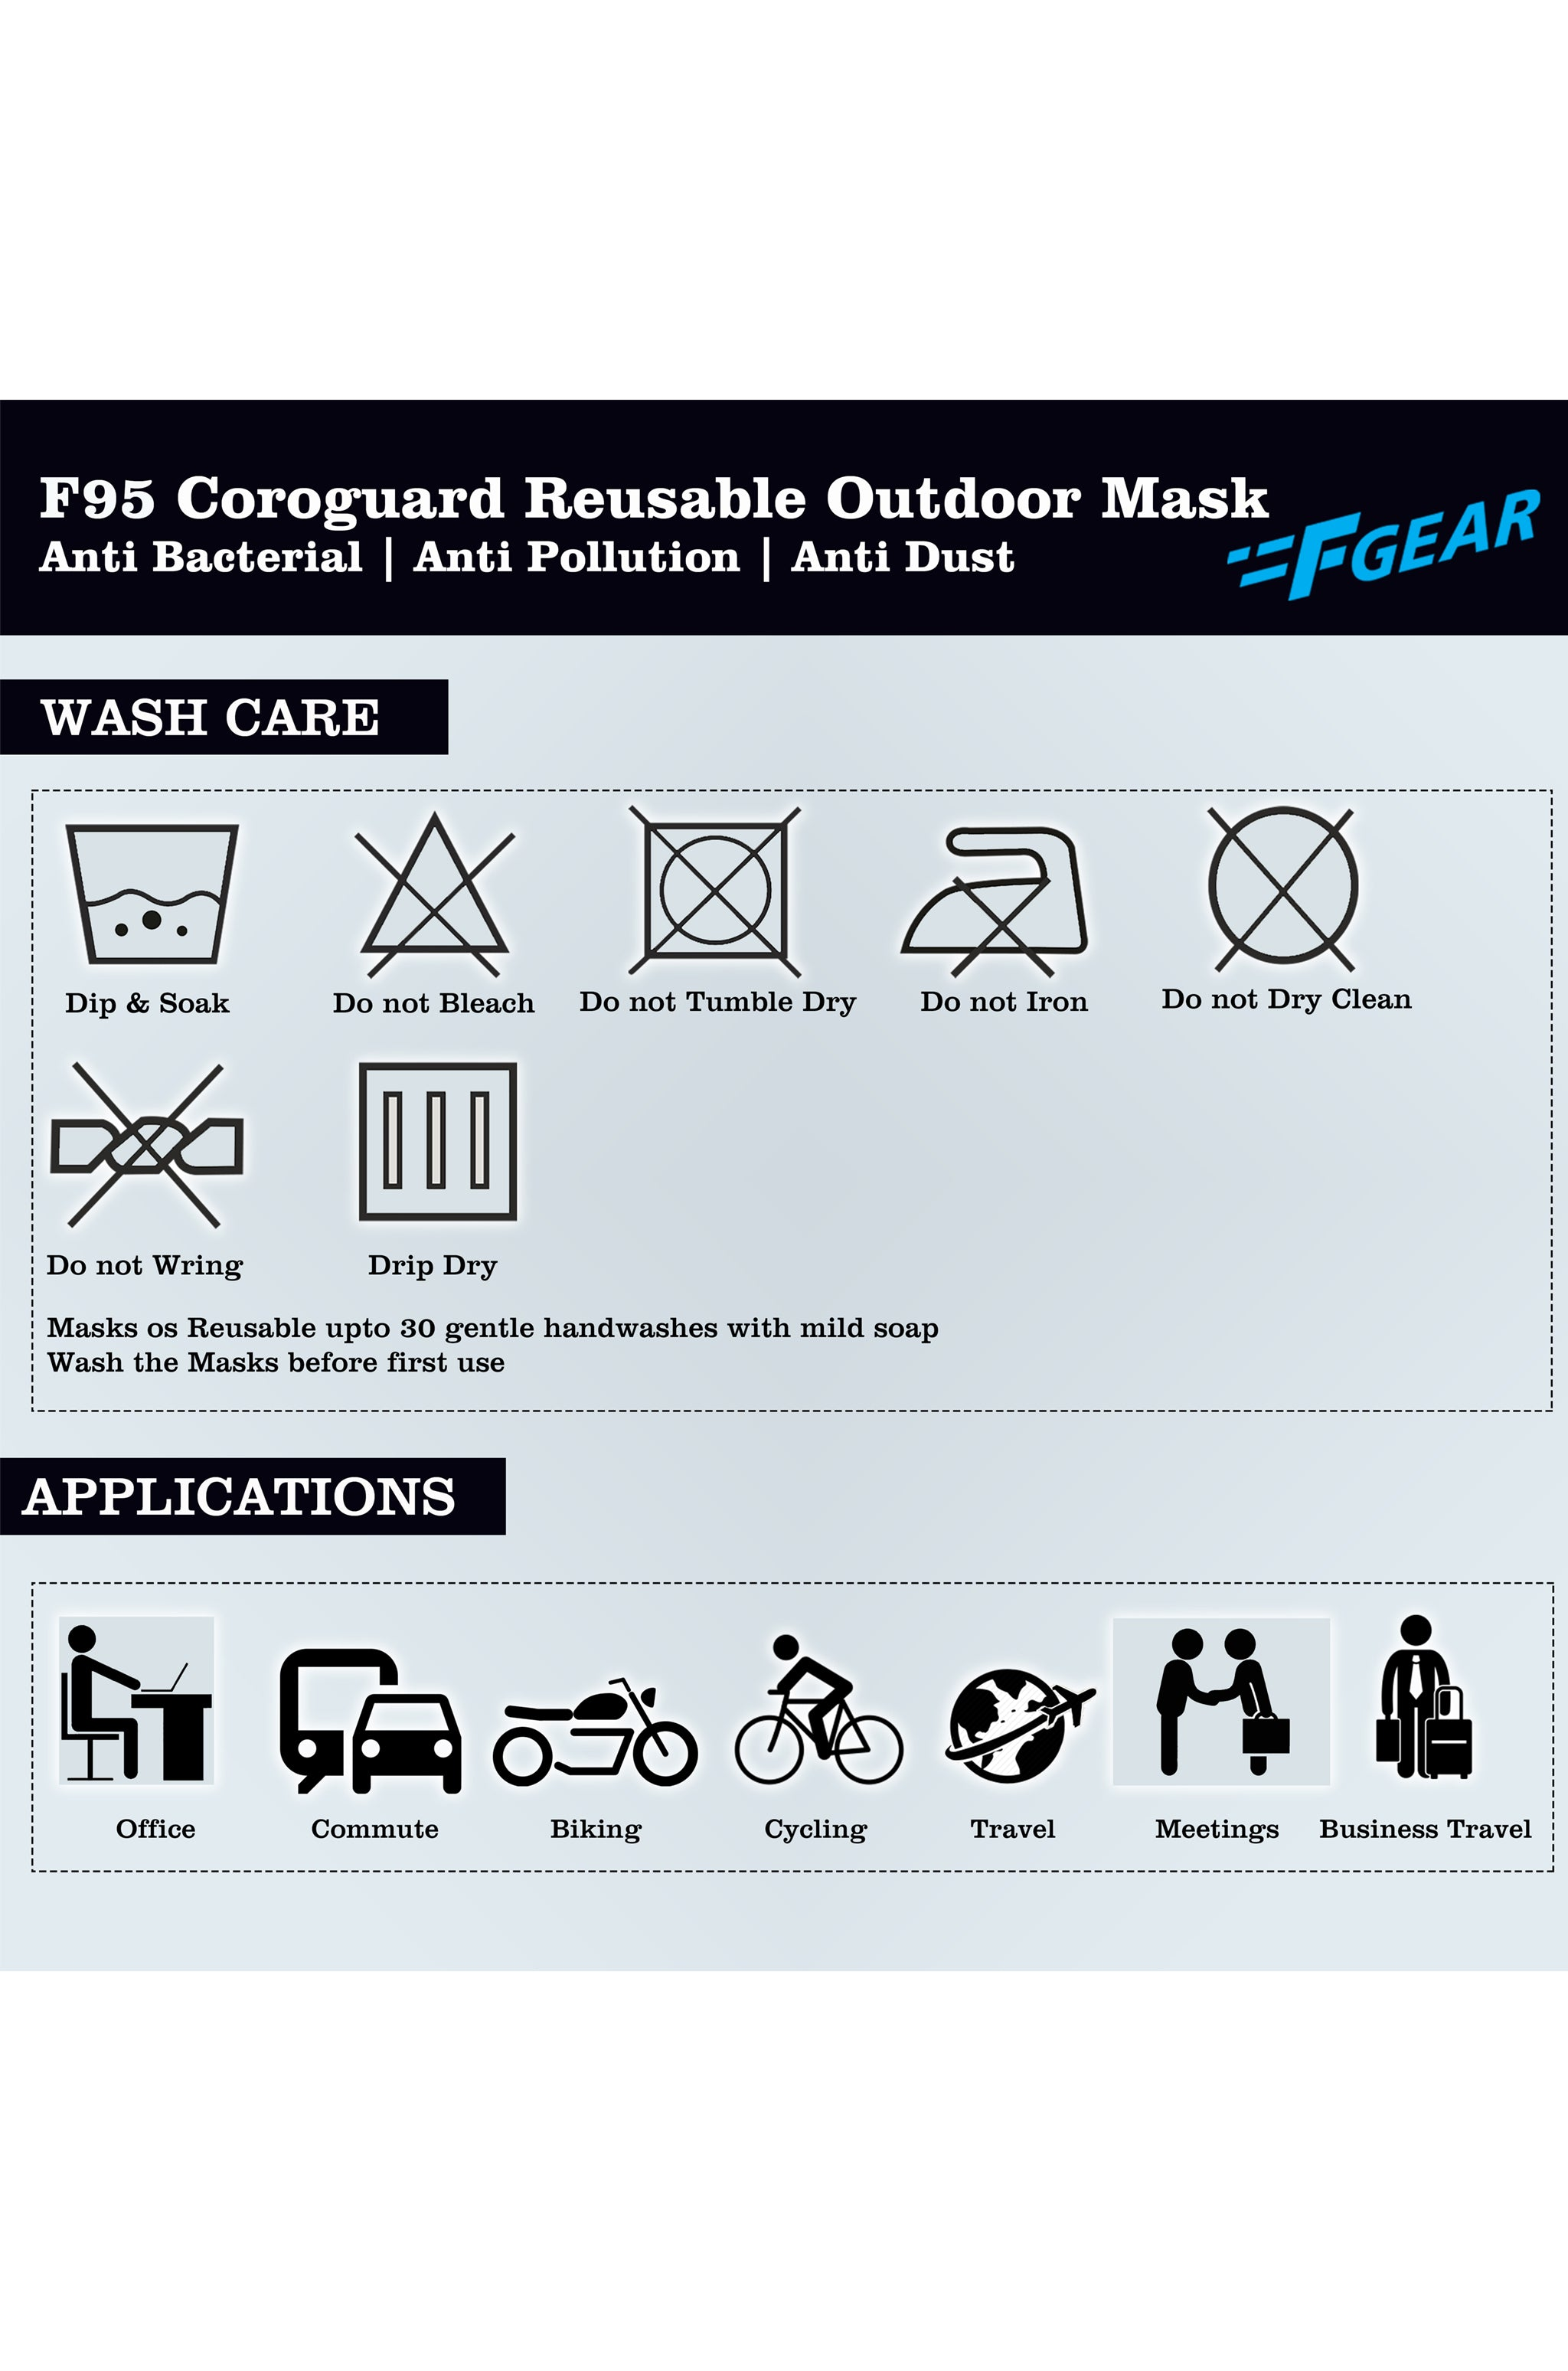 F Gear Coroguard F95 Mask Navy Blue-F green-White-Sea green 7 layer ISO CE SITRA lab certified >95% Bacteria Filtration PACK-4